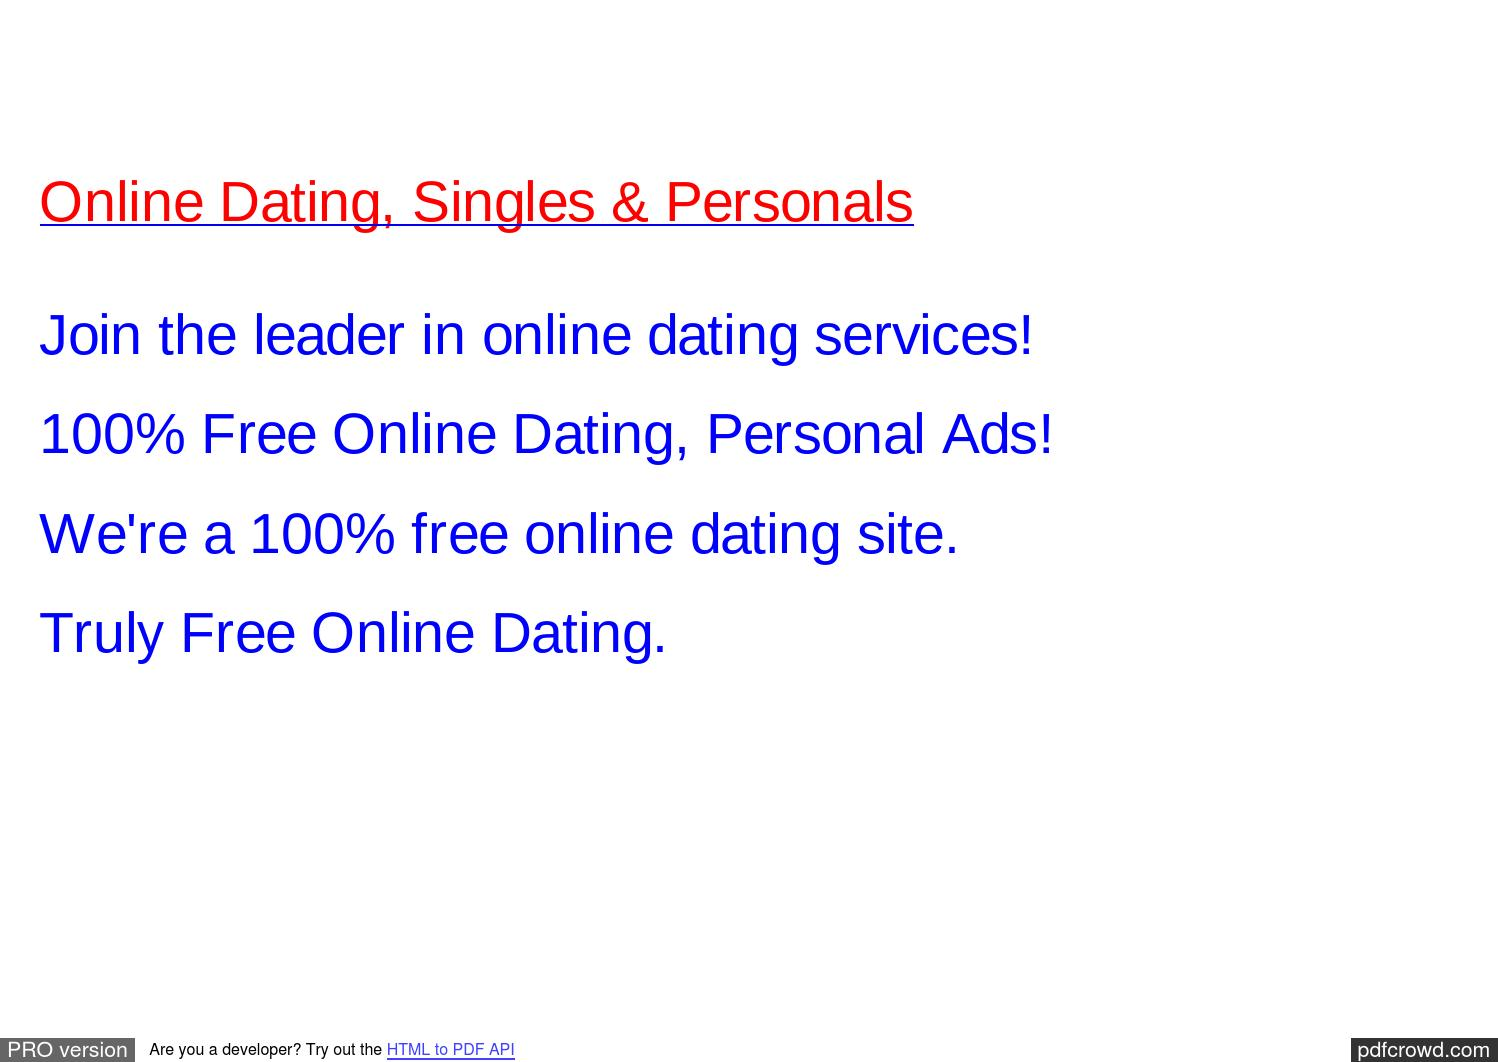 Free online dating services with